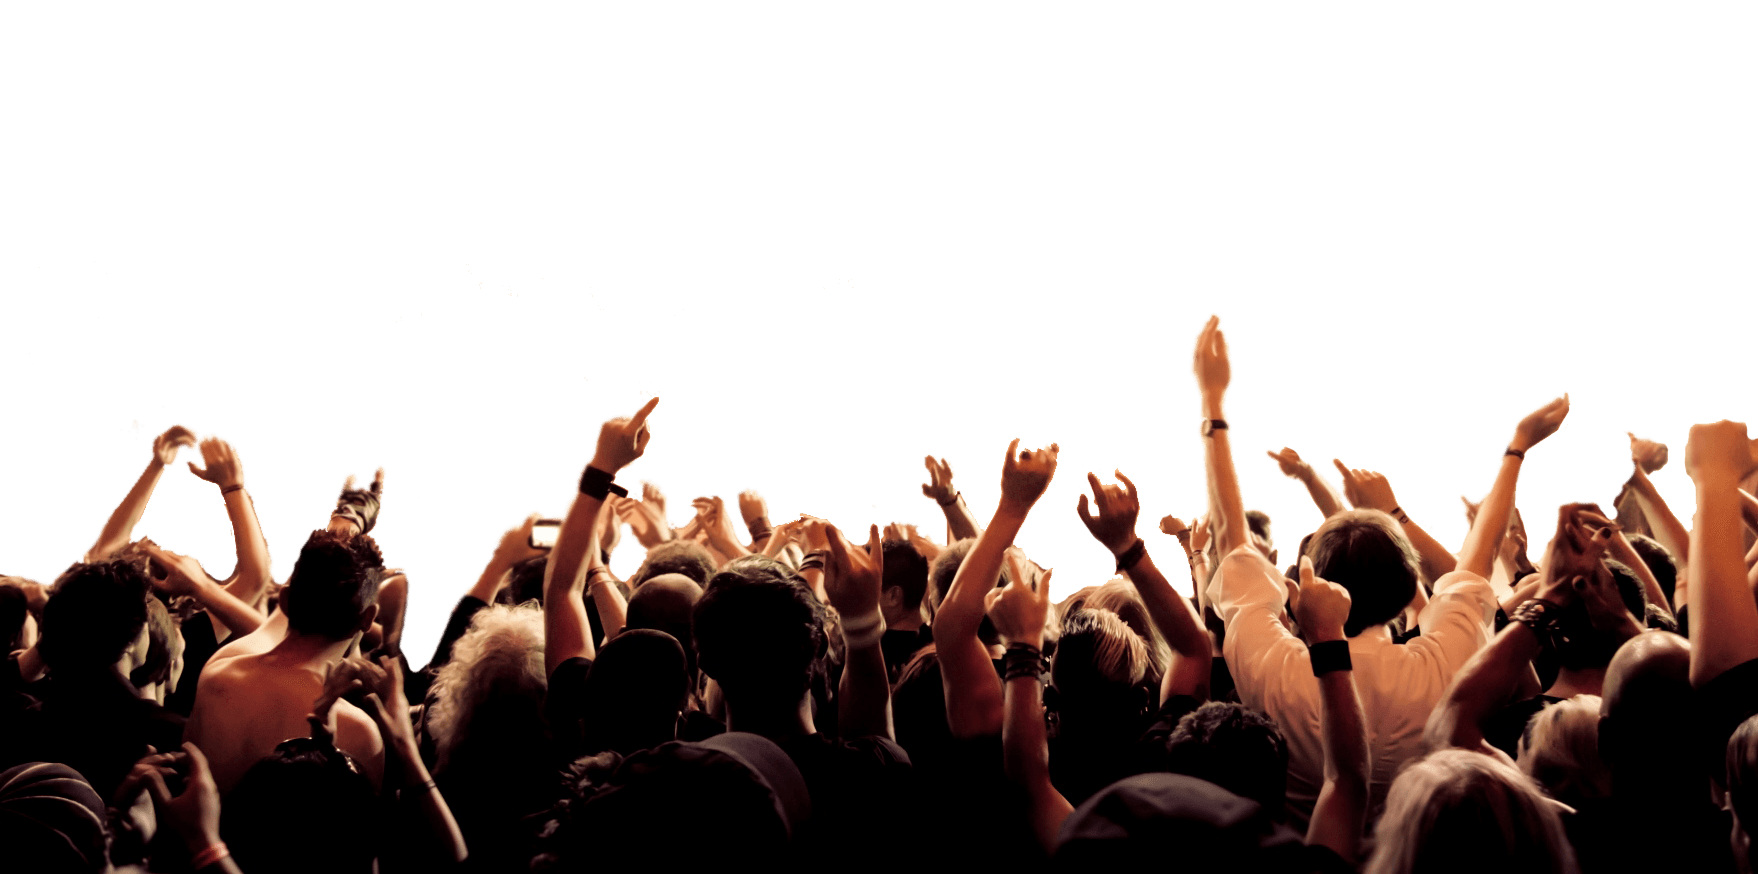 Cheering Crowd transparent PNG.